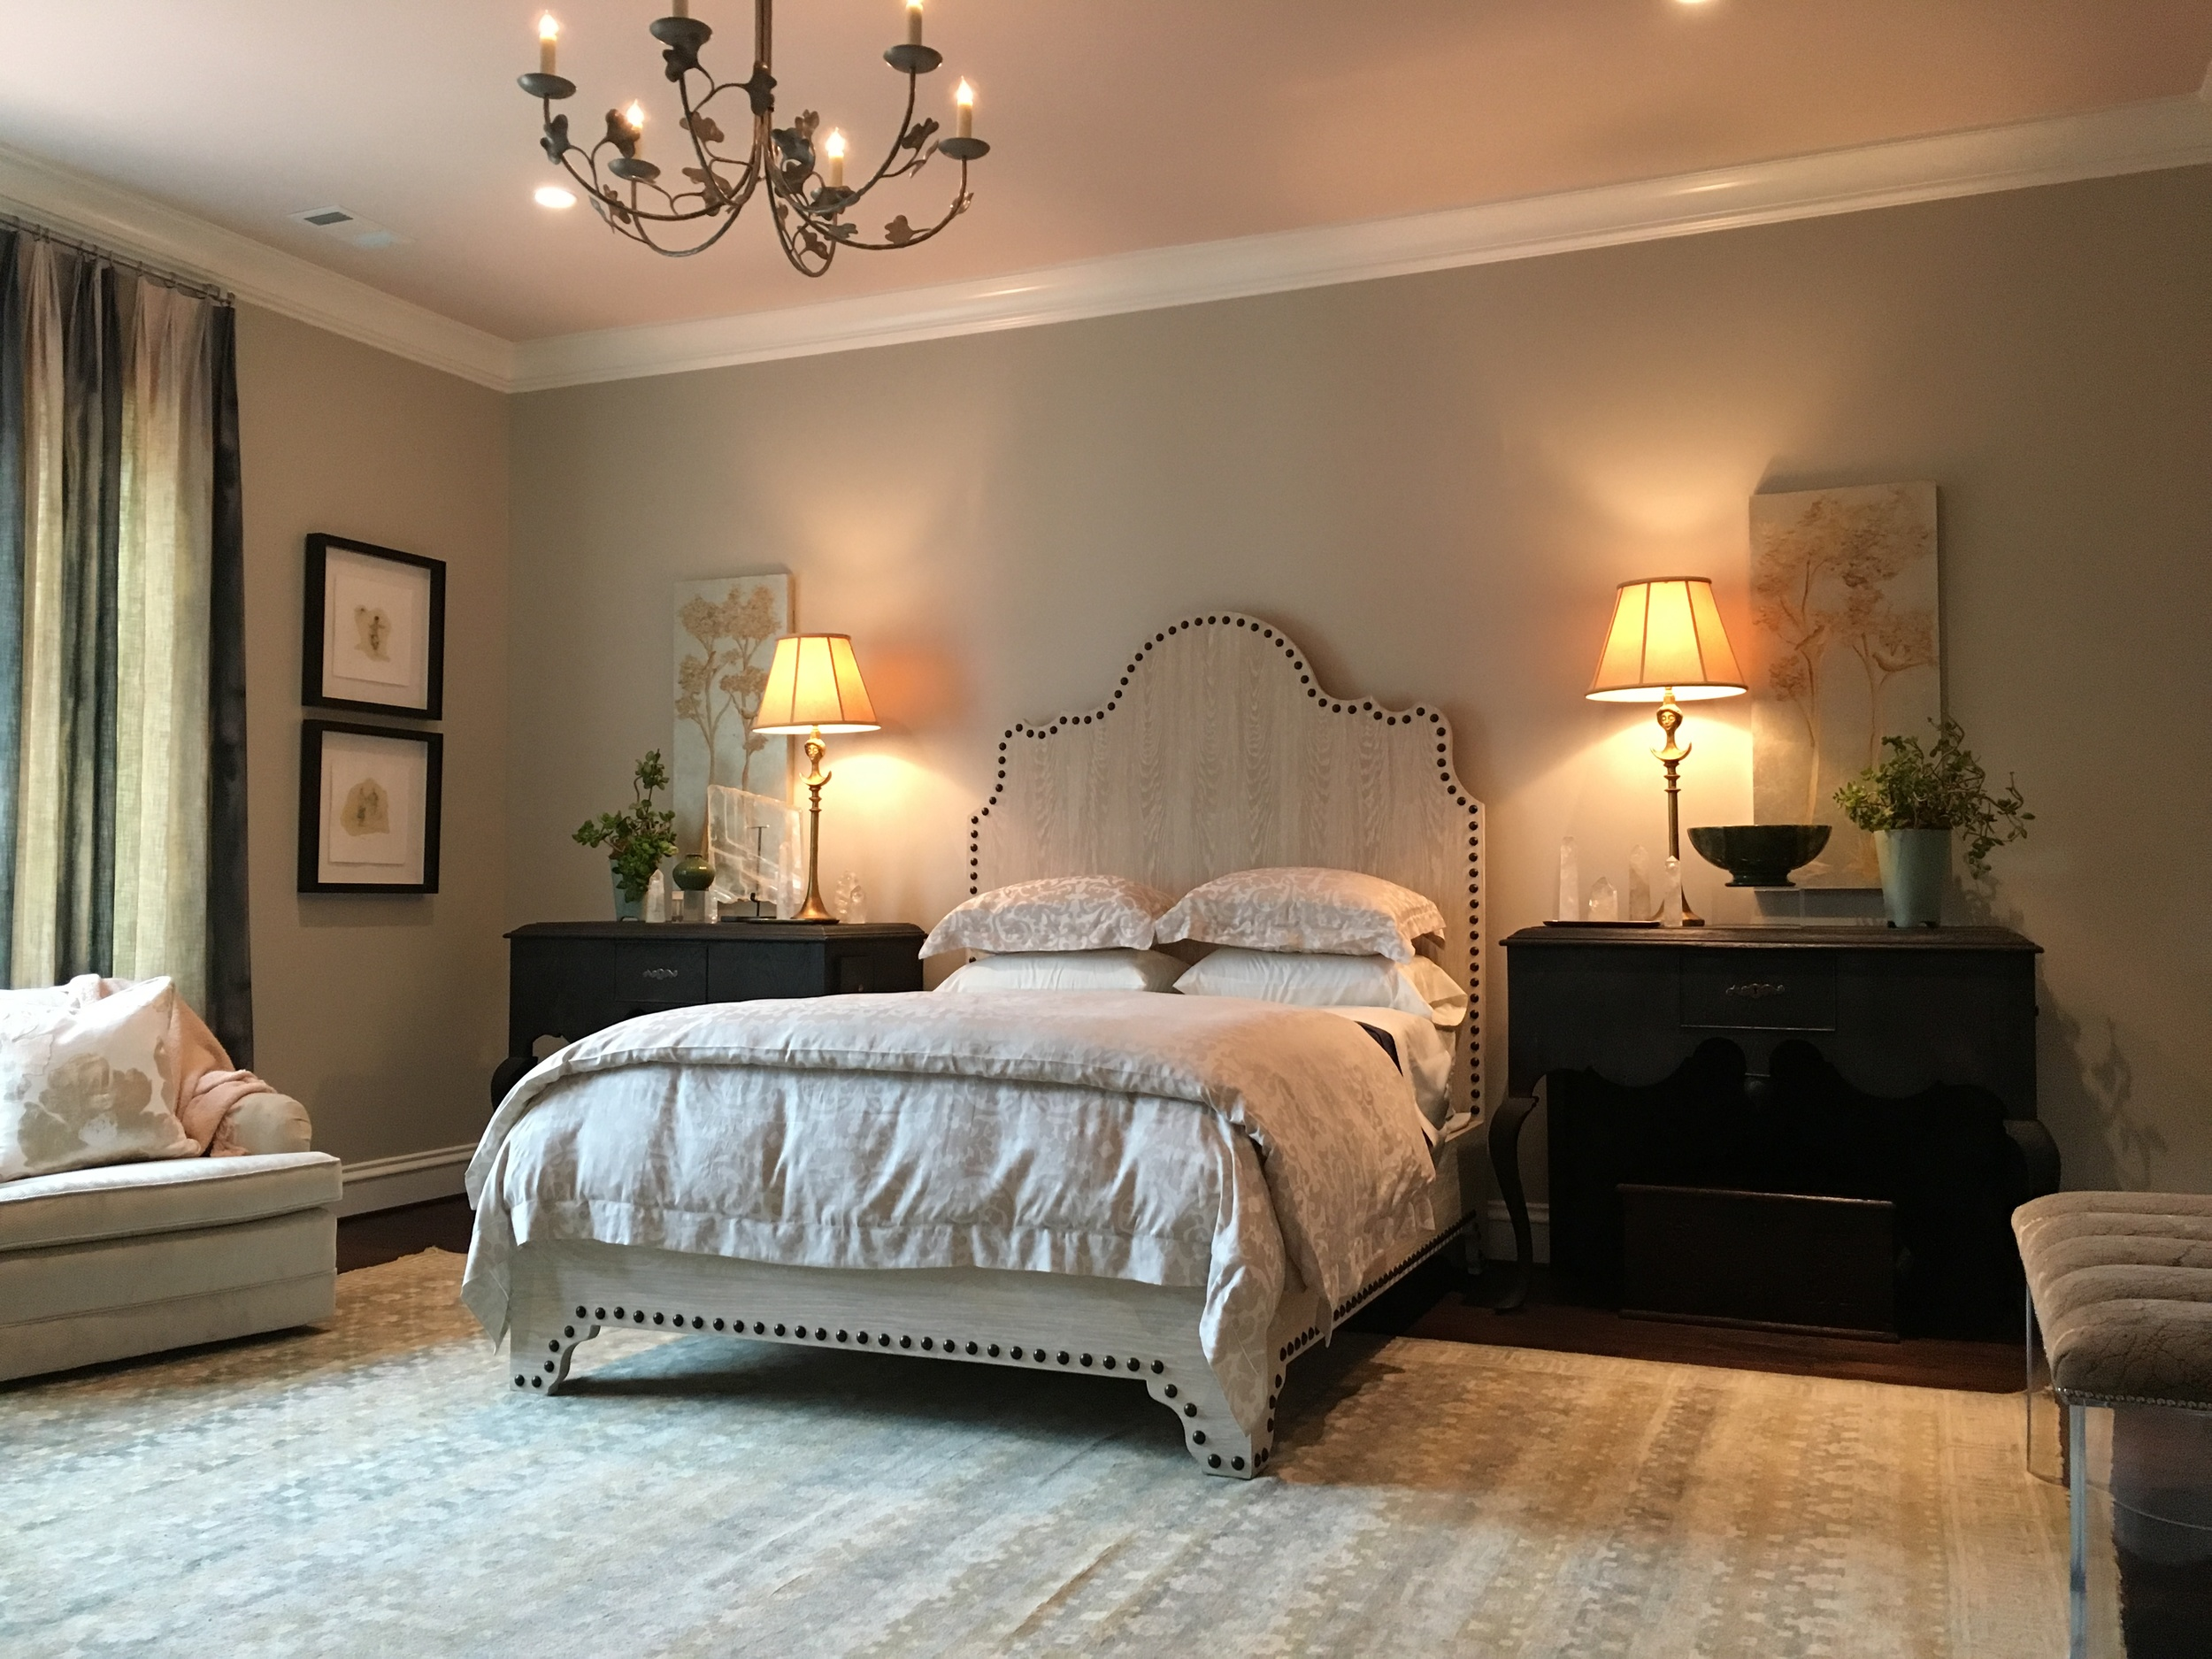 In the Home for the Holidays showhouse, I selected a pale, blush pink for the ceiling color.  The adjoining bathroom is also pale pink. There are soft blues in the rug, the artwork on either side of the bed and in the window treatments.  I also used crystal quartz obelisks on each bedside table.